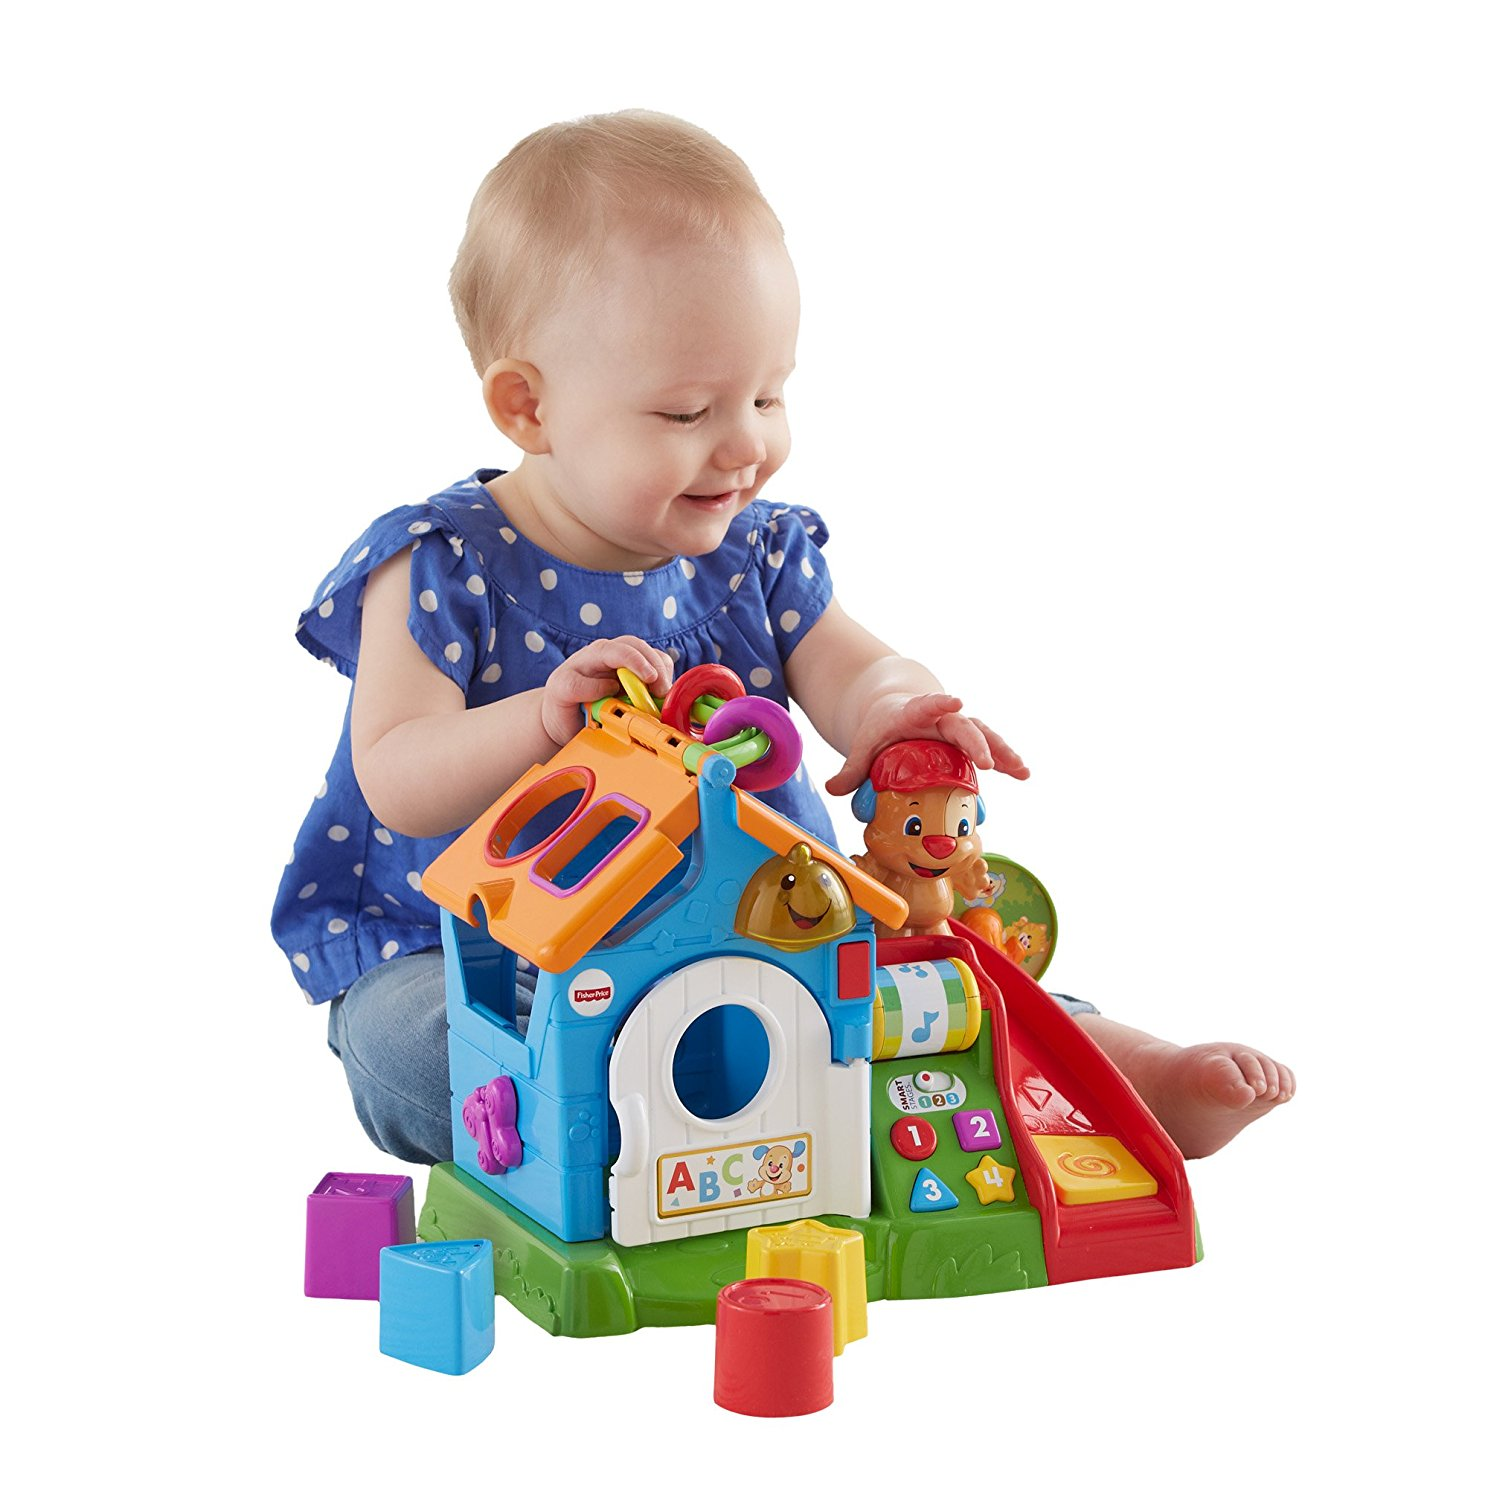 Struggling to Find a Present for a Toddler Best Toys for Toddlers